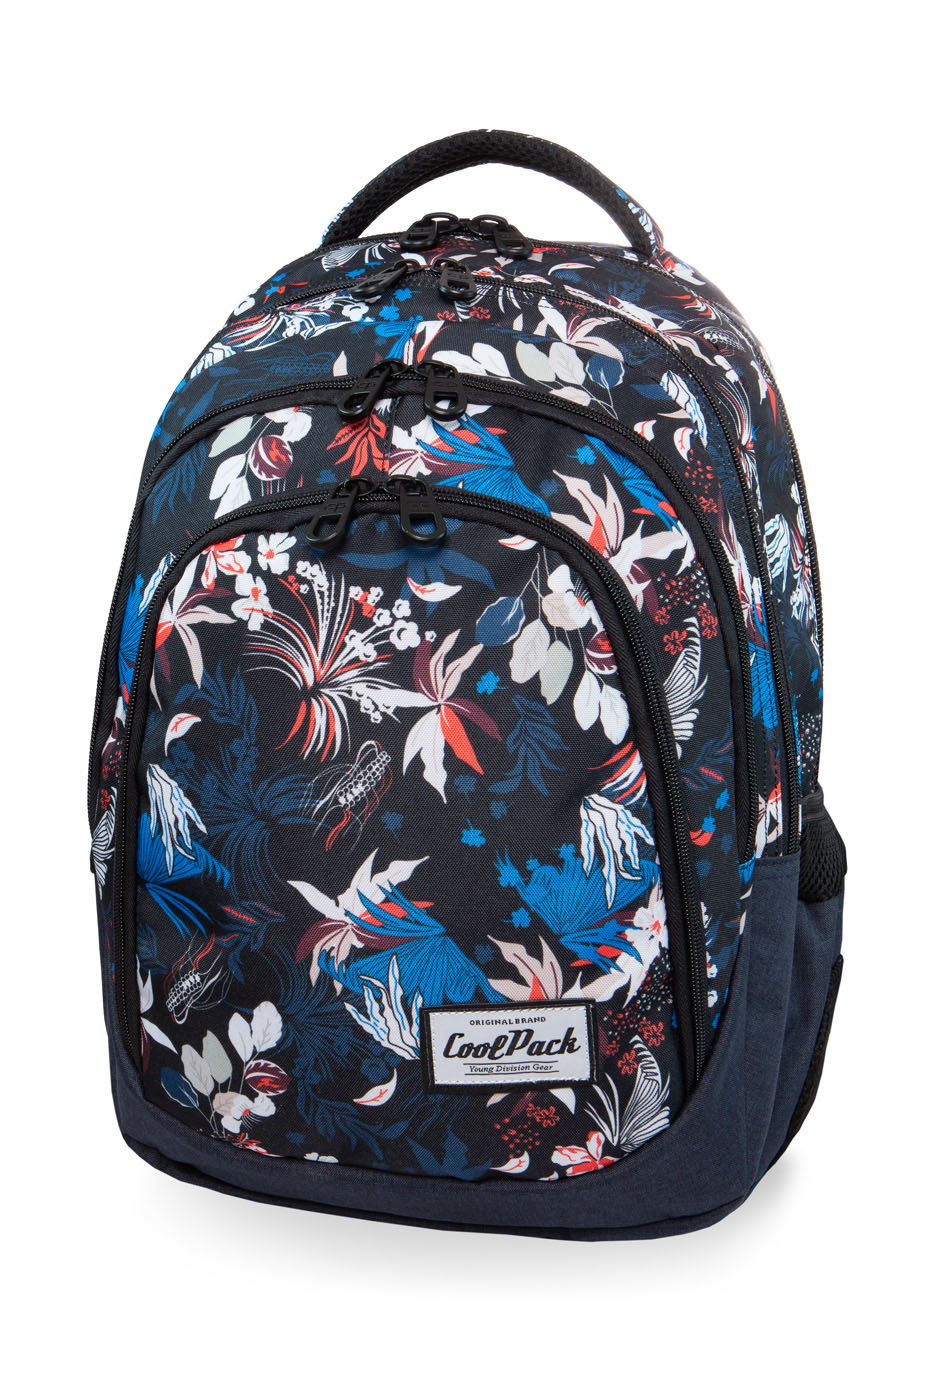 Coolpack - drafter - youth backpack - ocean garden